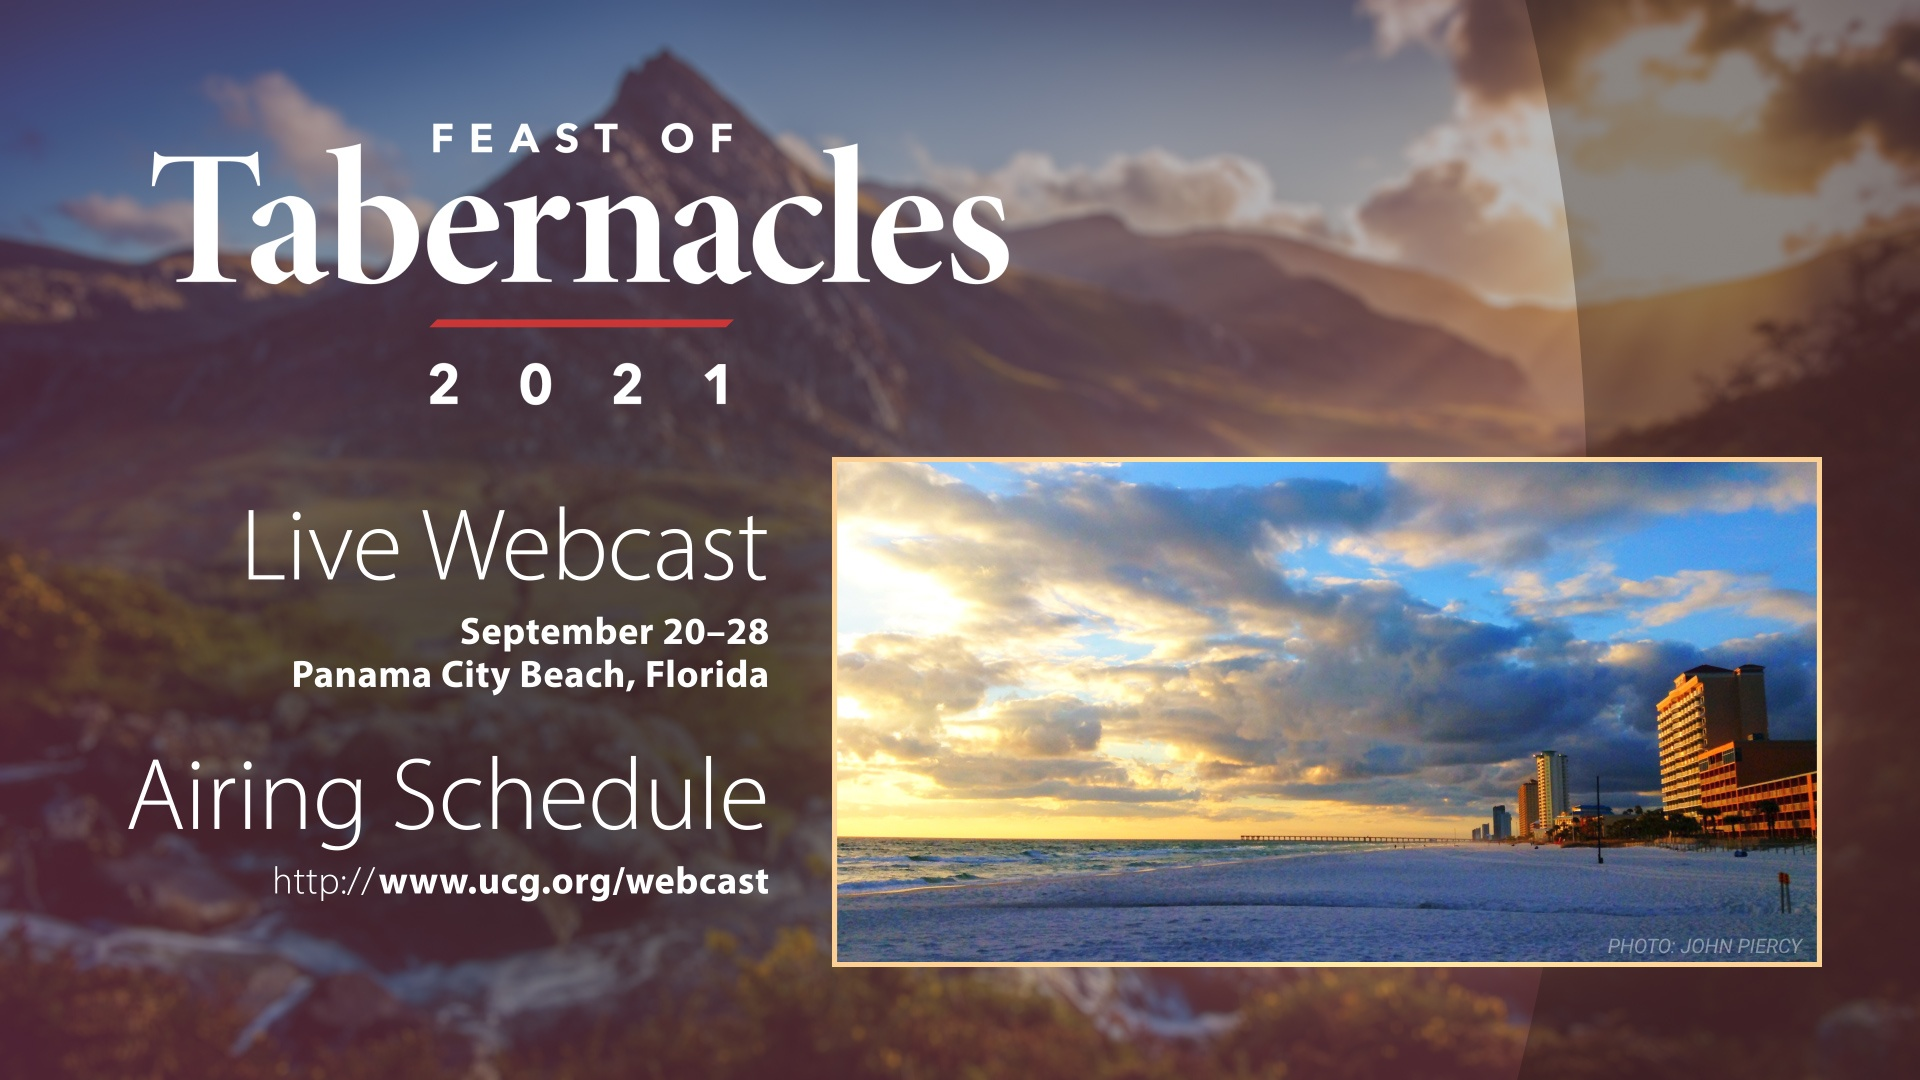 2021 Feast of Tabernacles Webcast Information